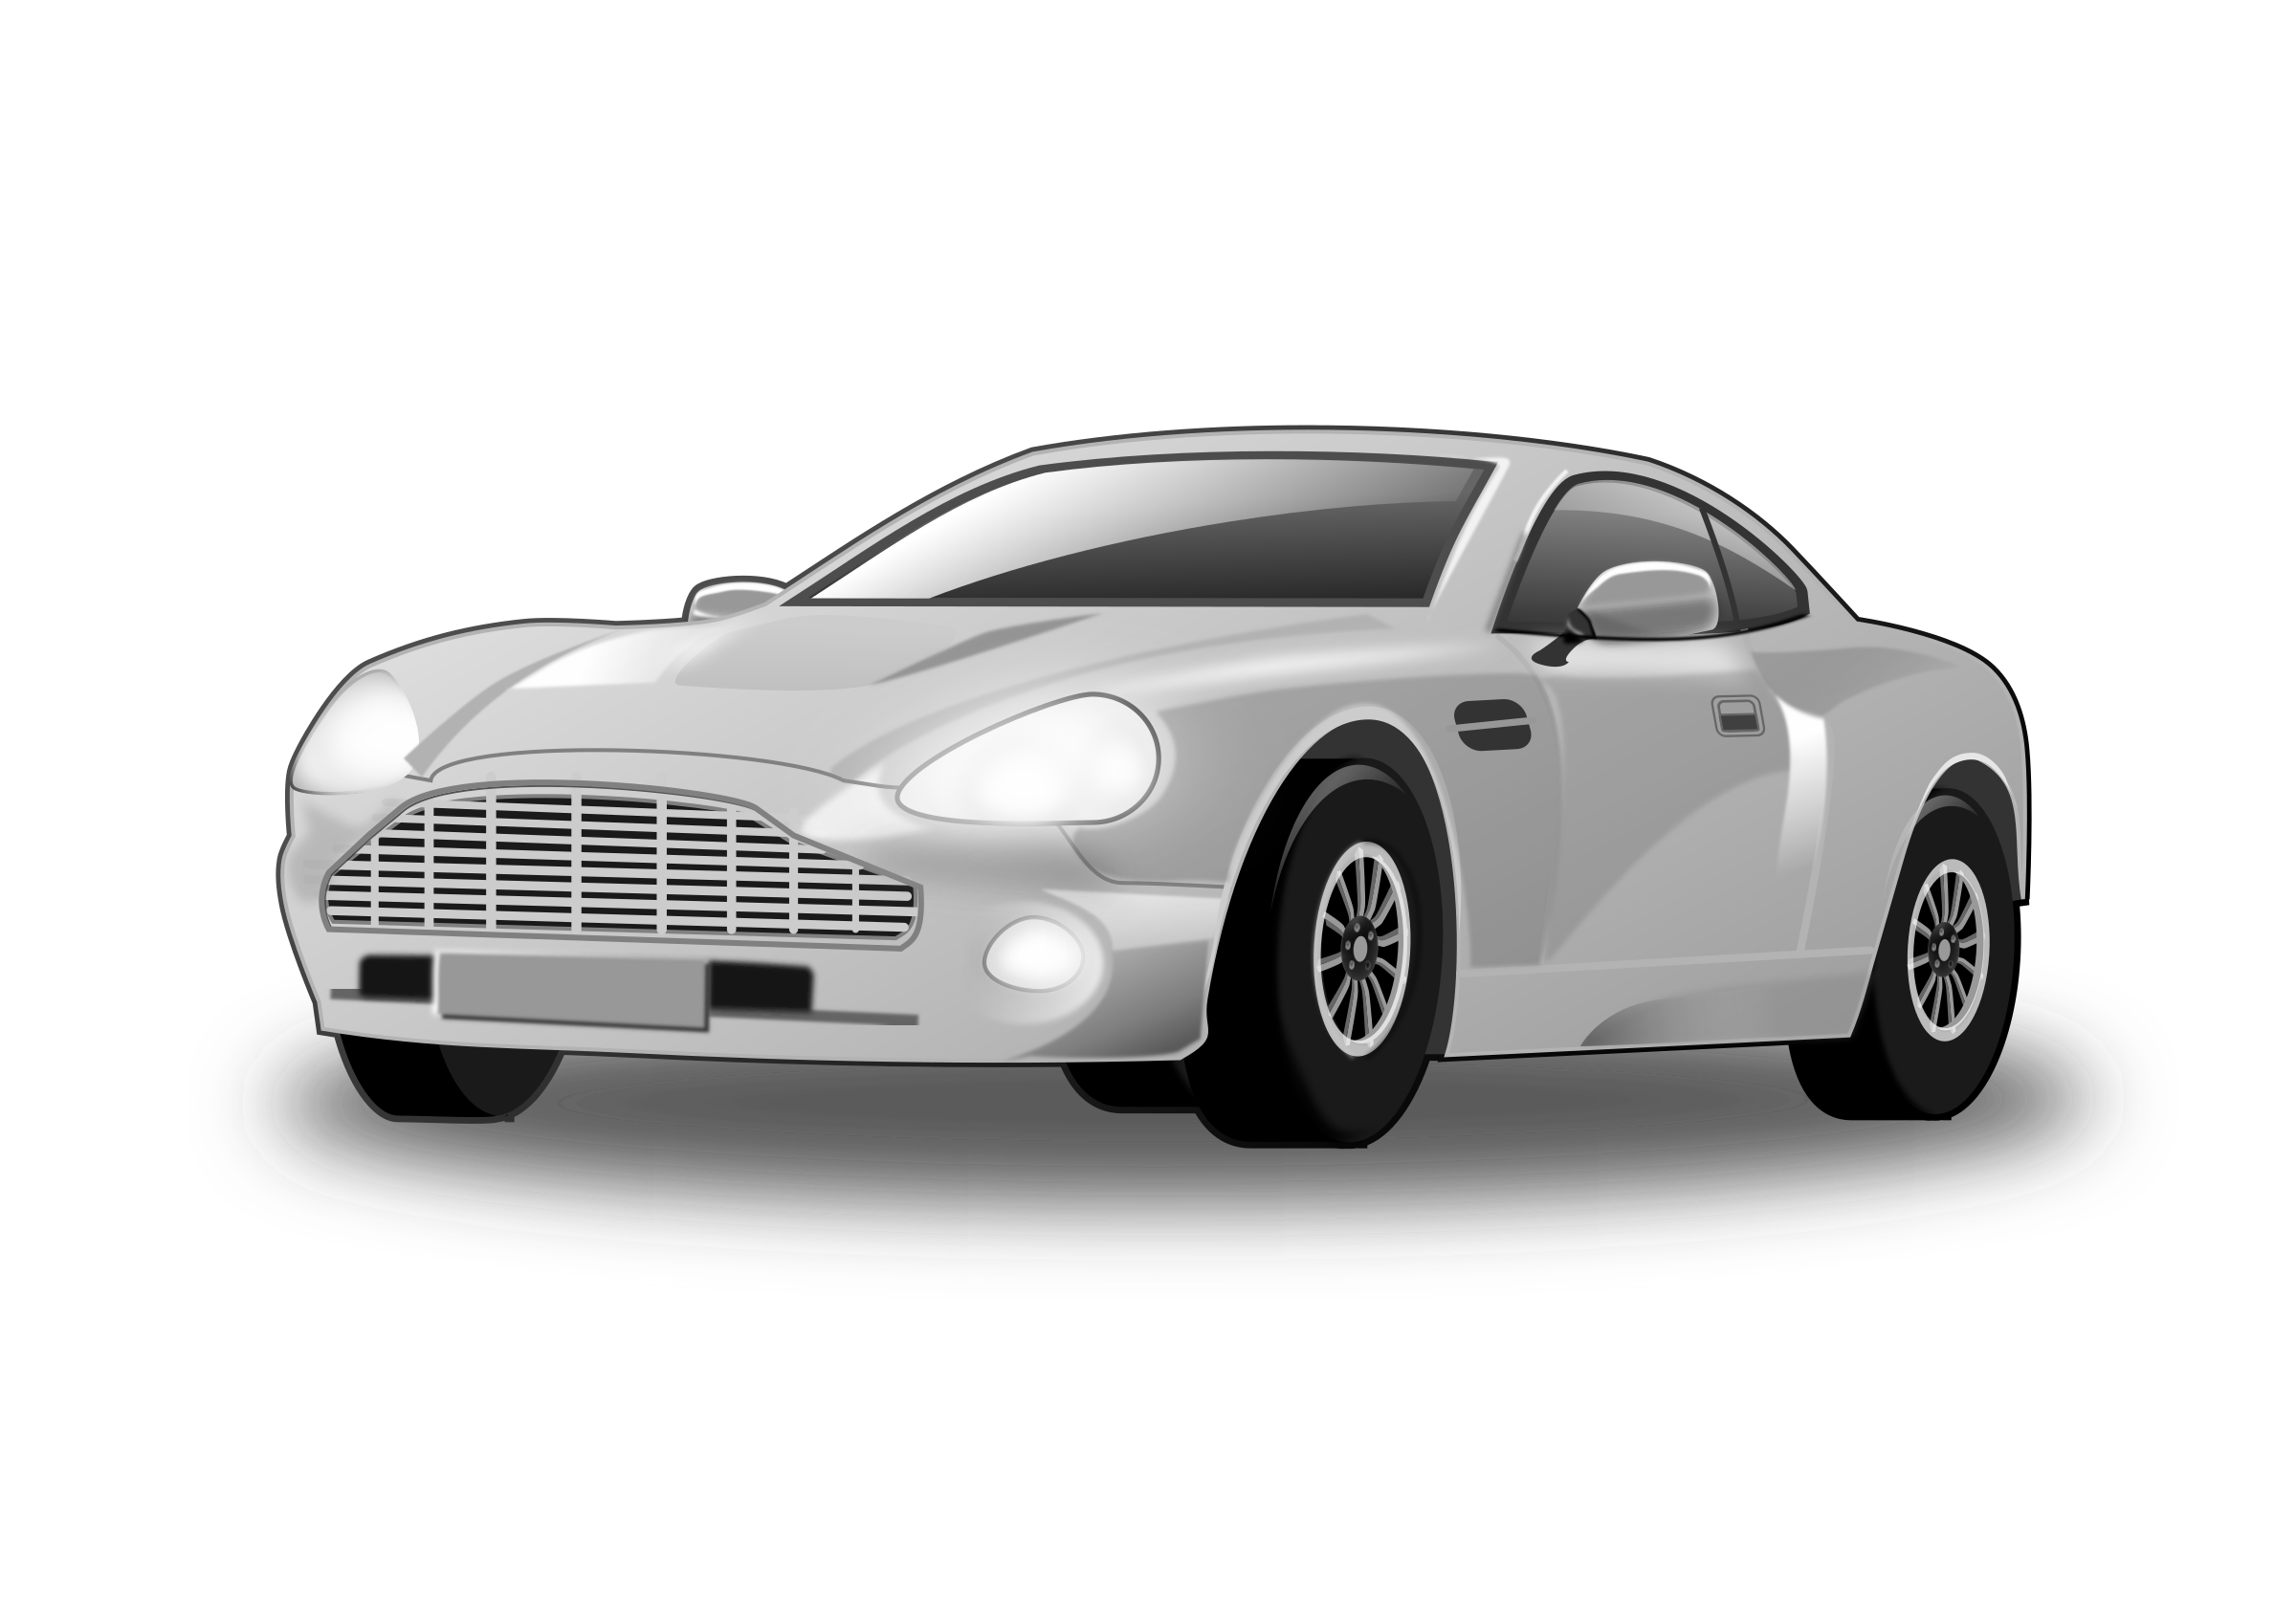 Clipart cars delivery. Vehicle nice car pencil